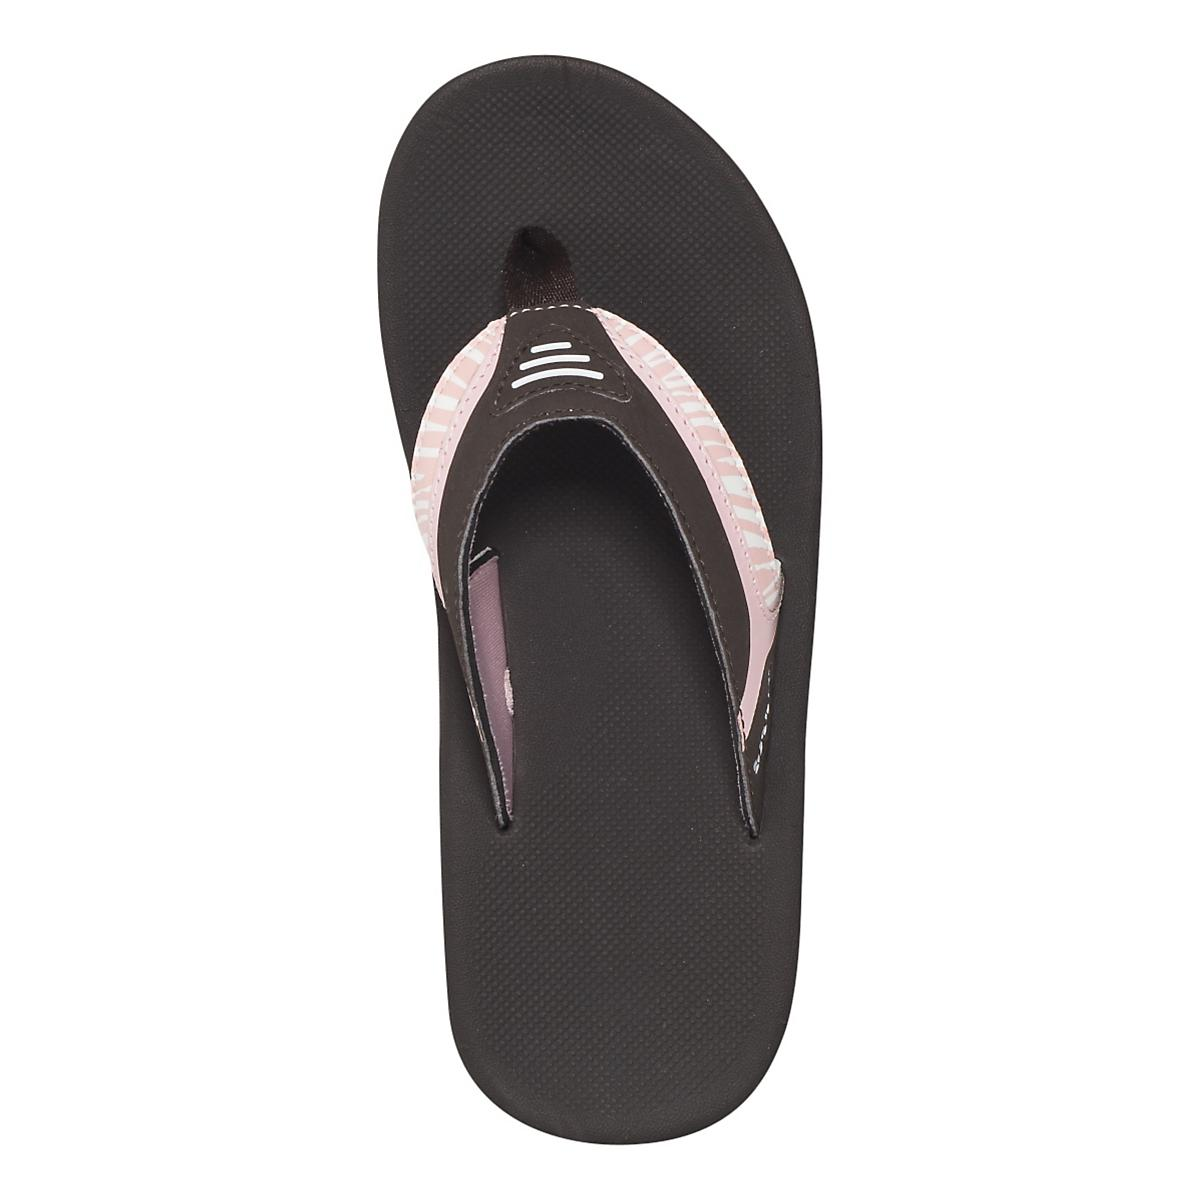 b74e5cdd08bd Womens Reef Slap 2 Sandals Shoe at Road Runner Sports